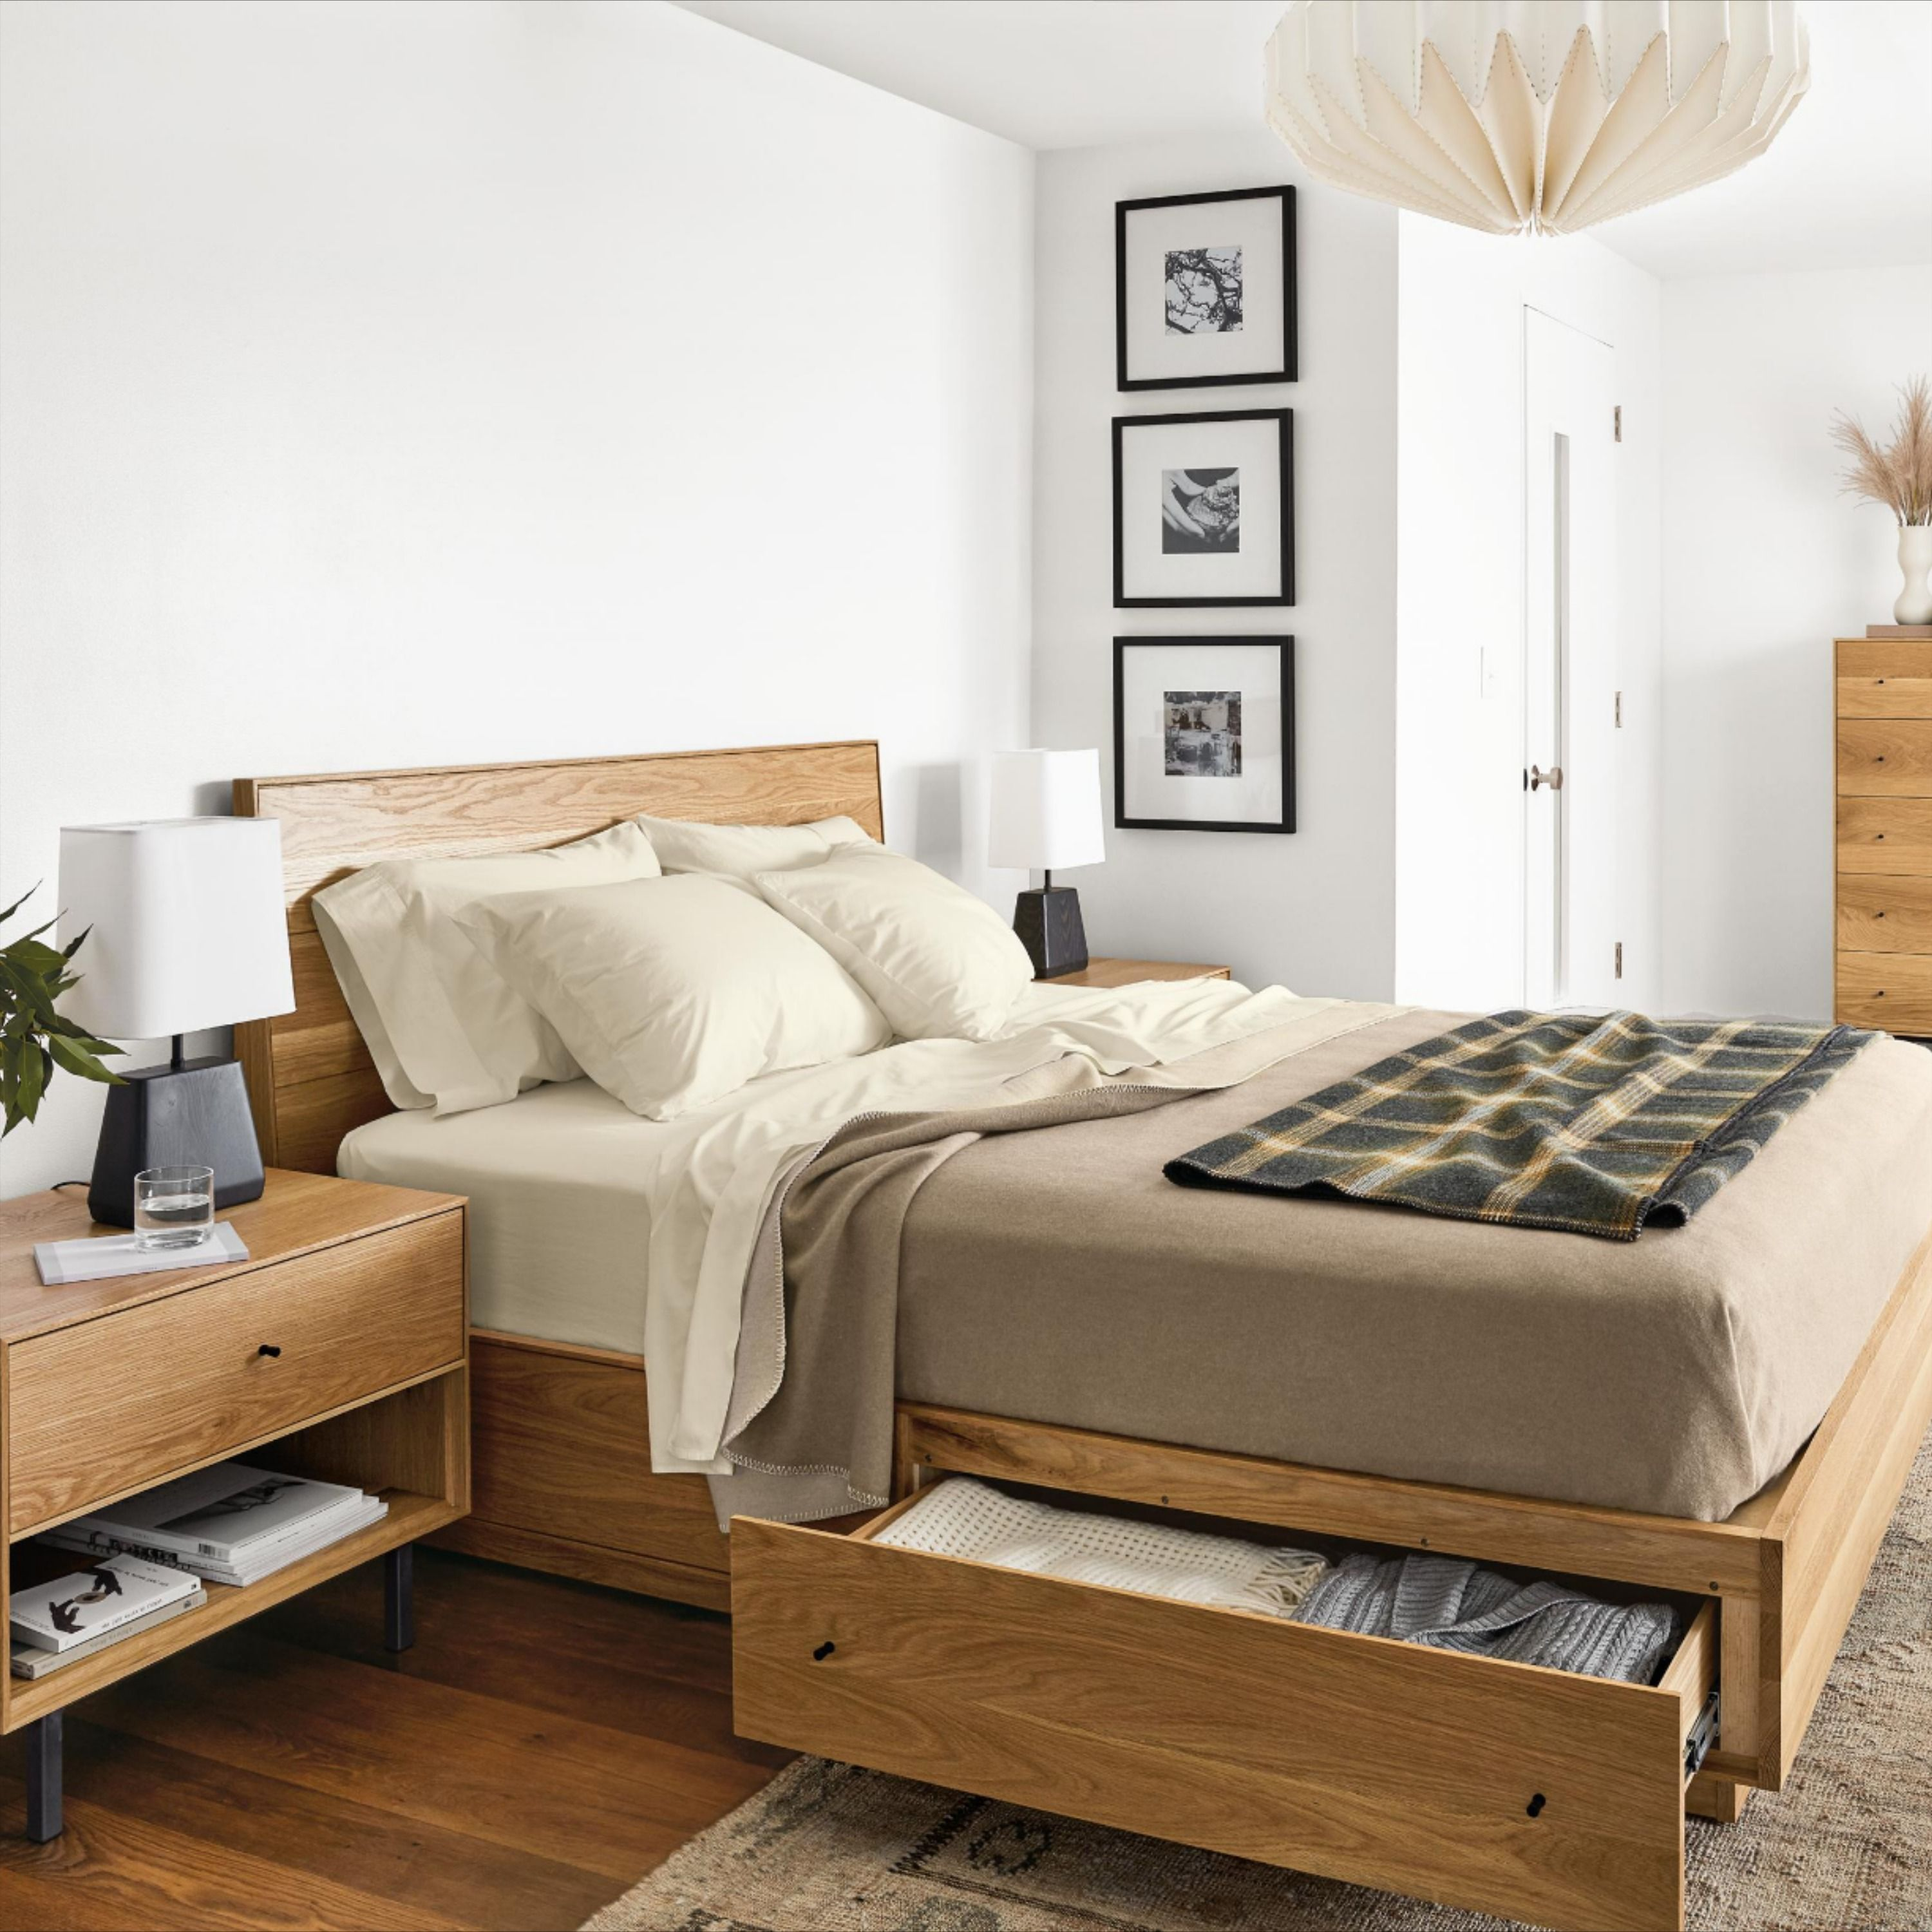 Hudson Bed with Storage Drawers - Modern & Contemporary Beds